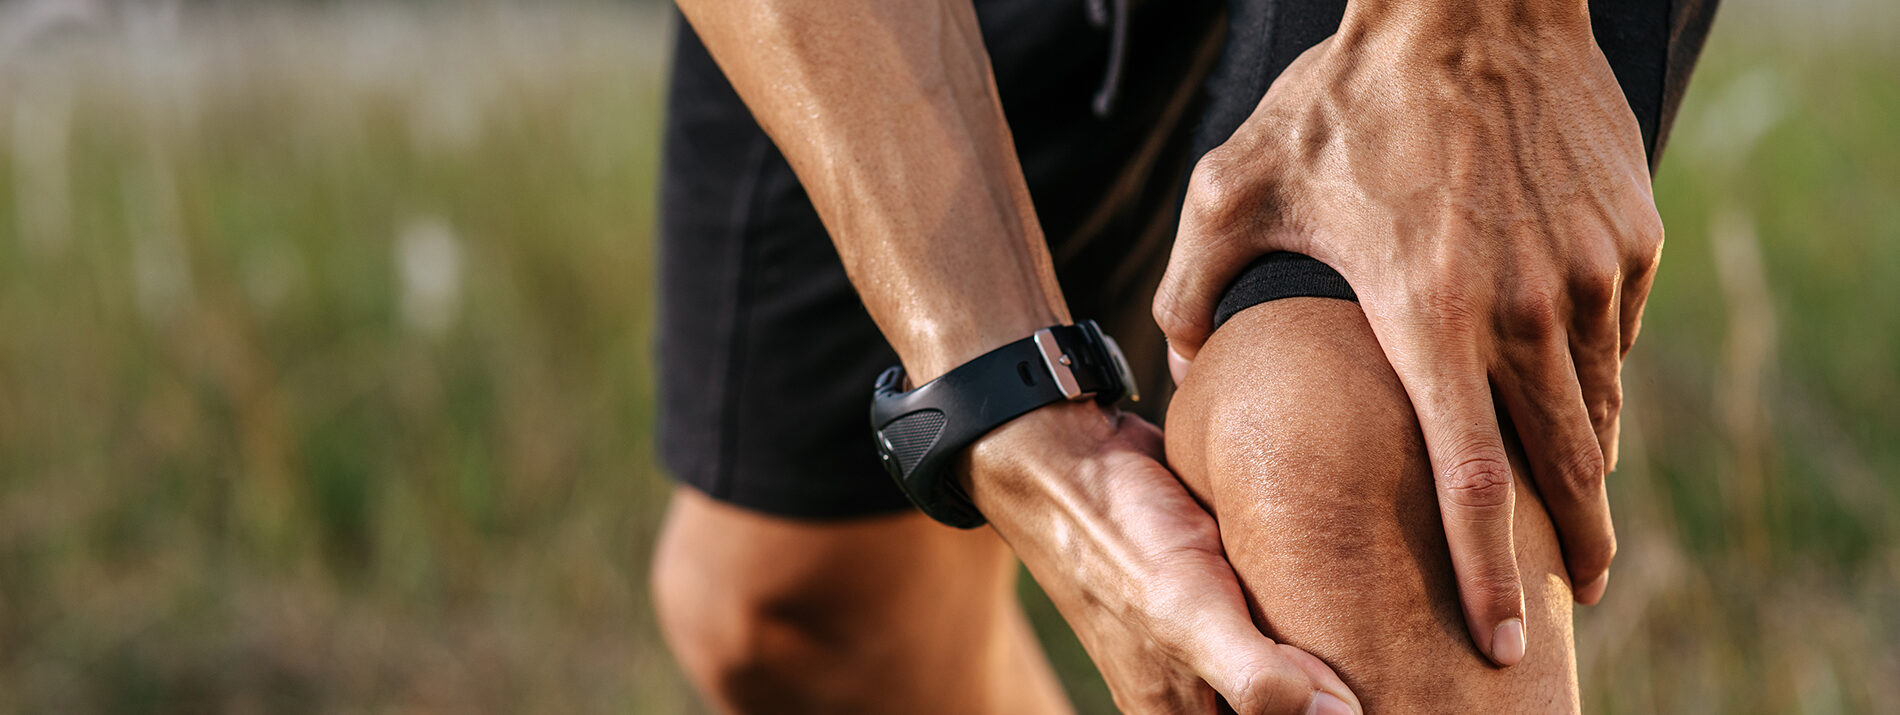 Knee pain injury help with physical therapy